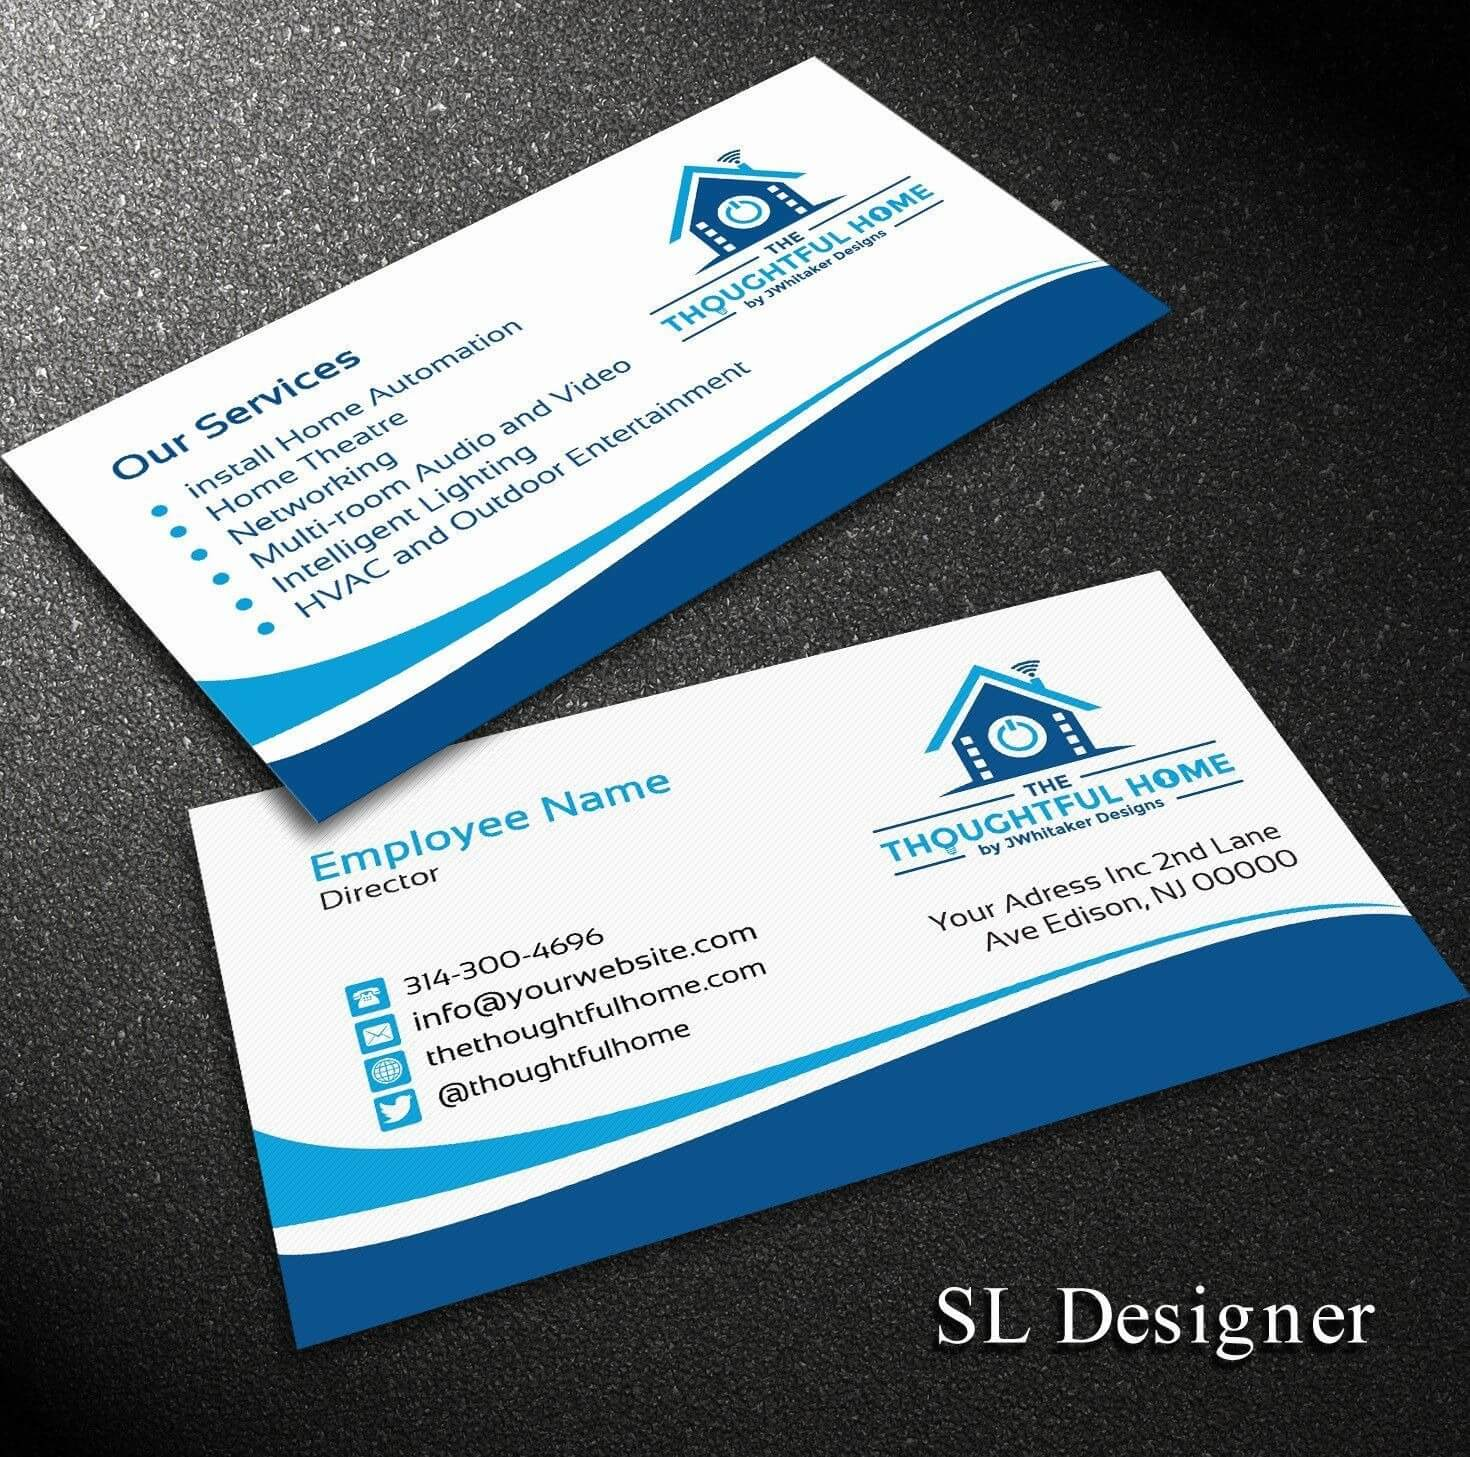 Pinanggunstore On Business Cards Within Networking Card Template